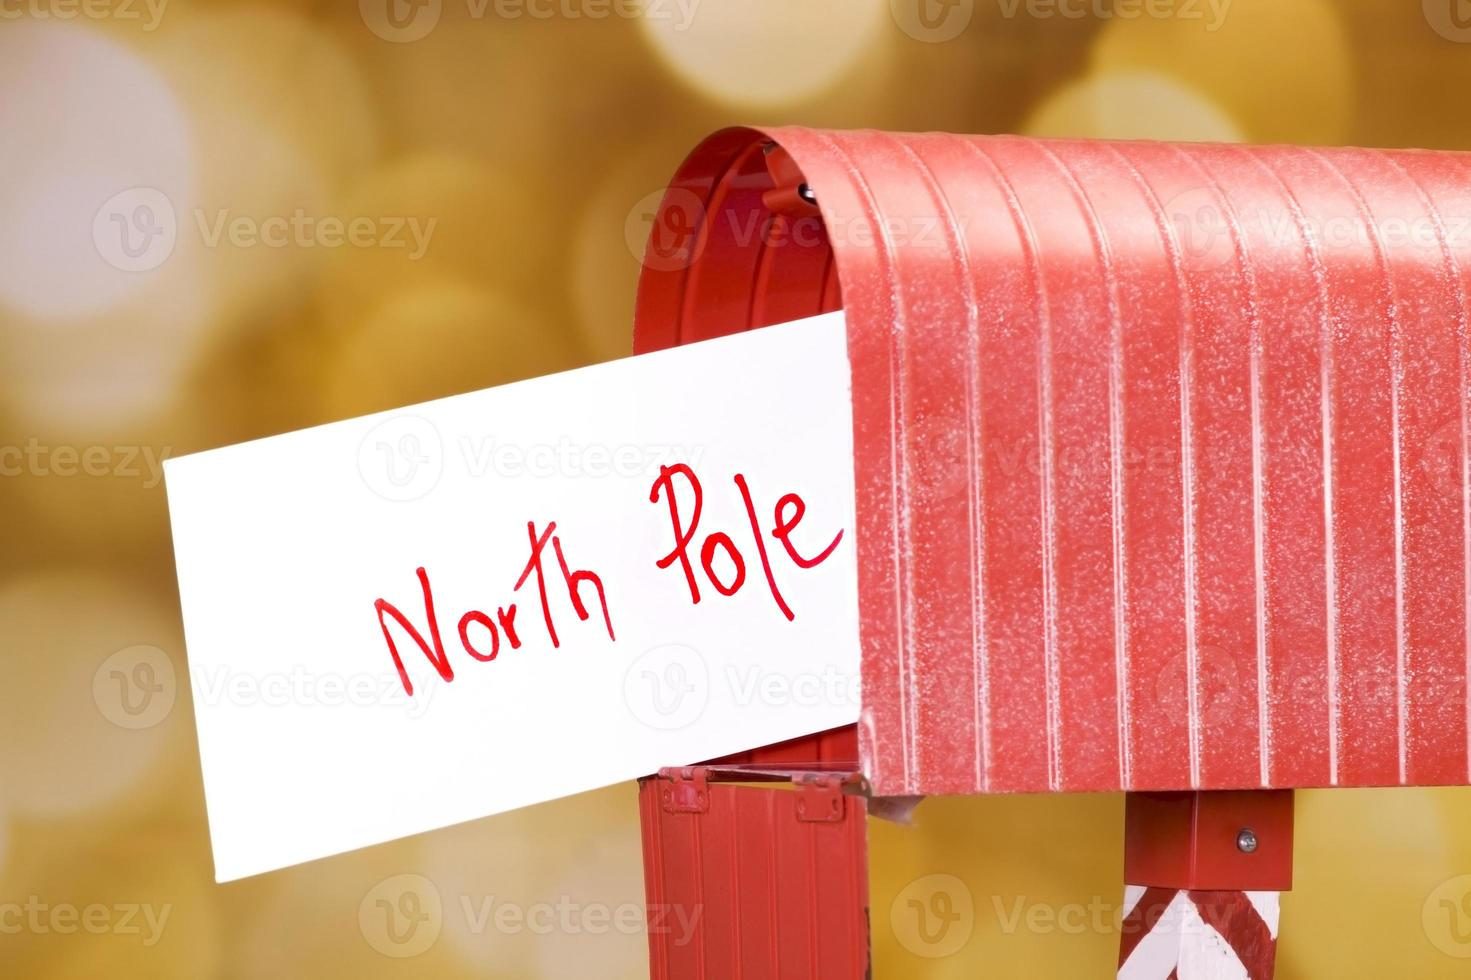 Letter to North Pole photo